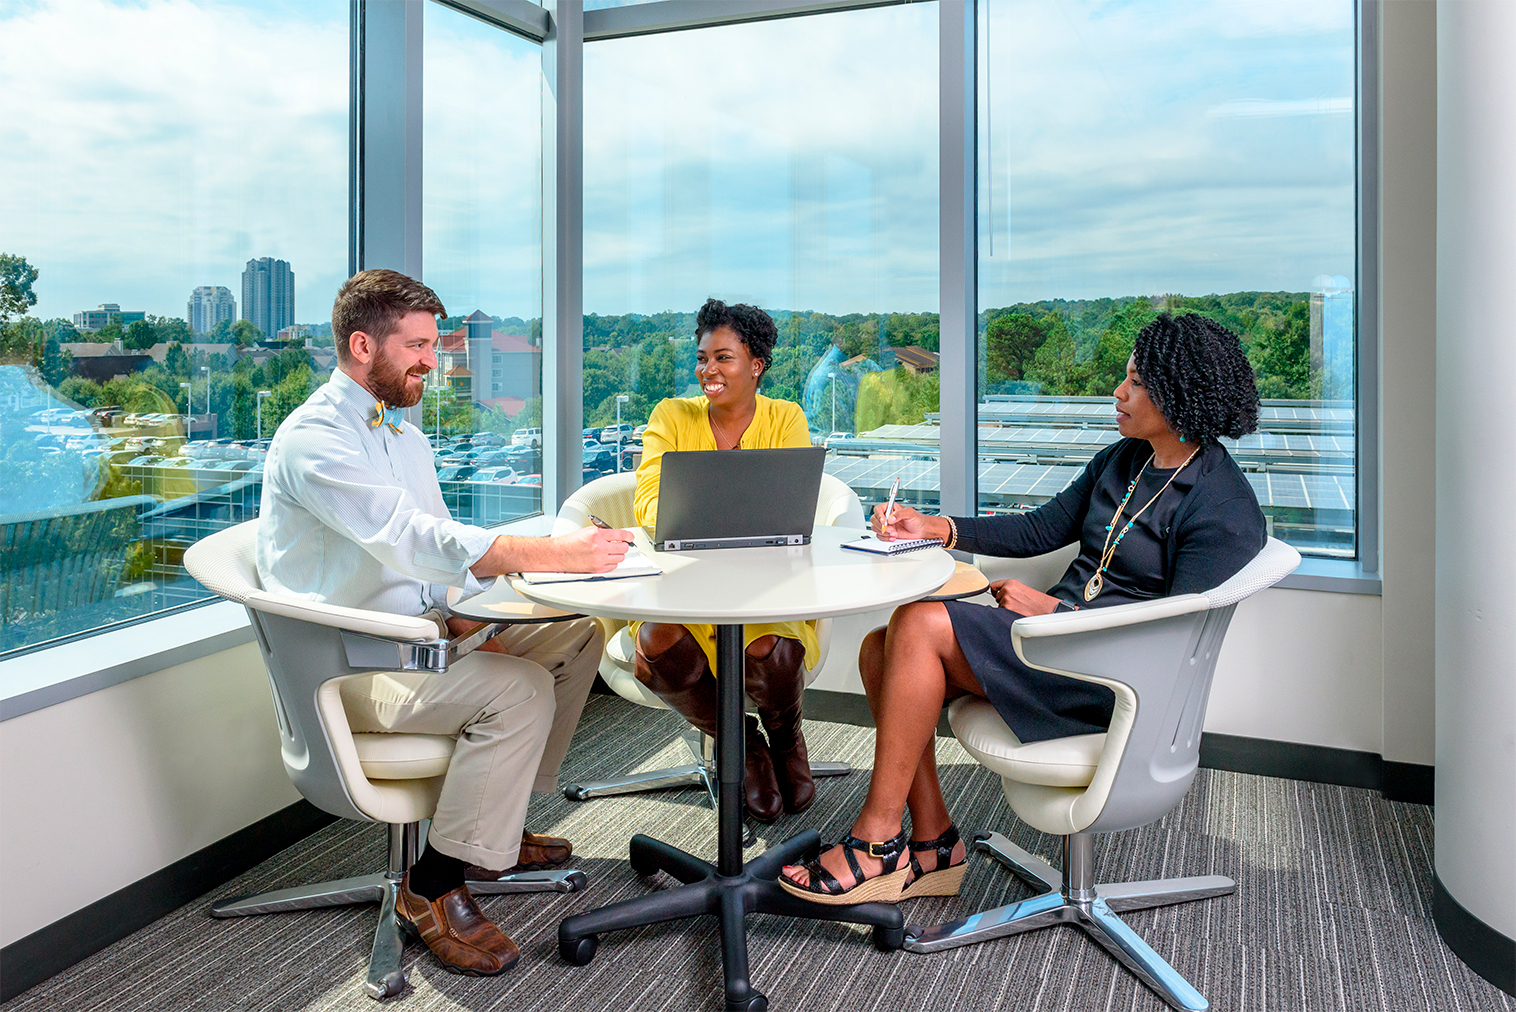 3 people talking around a meeting table in front of large windows